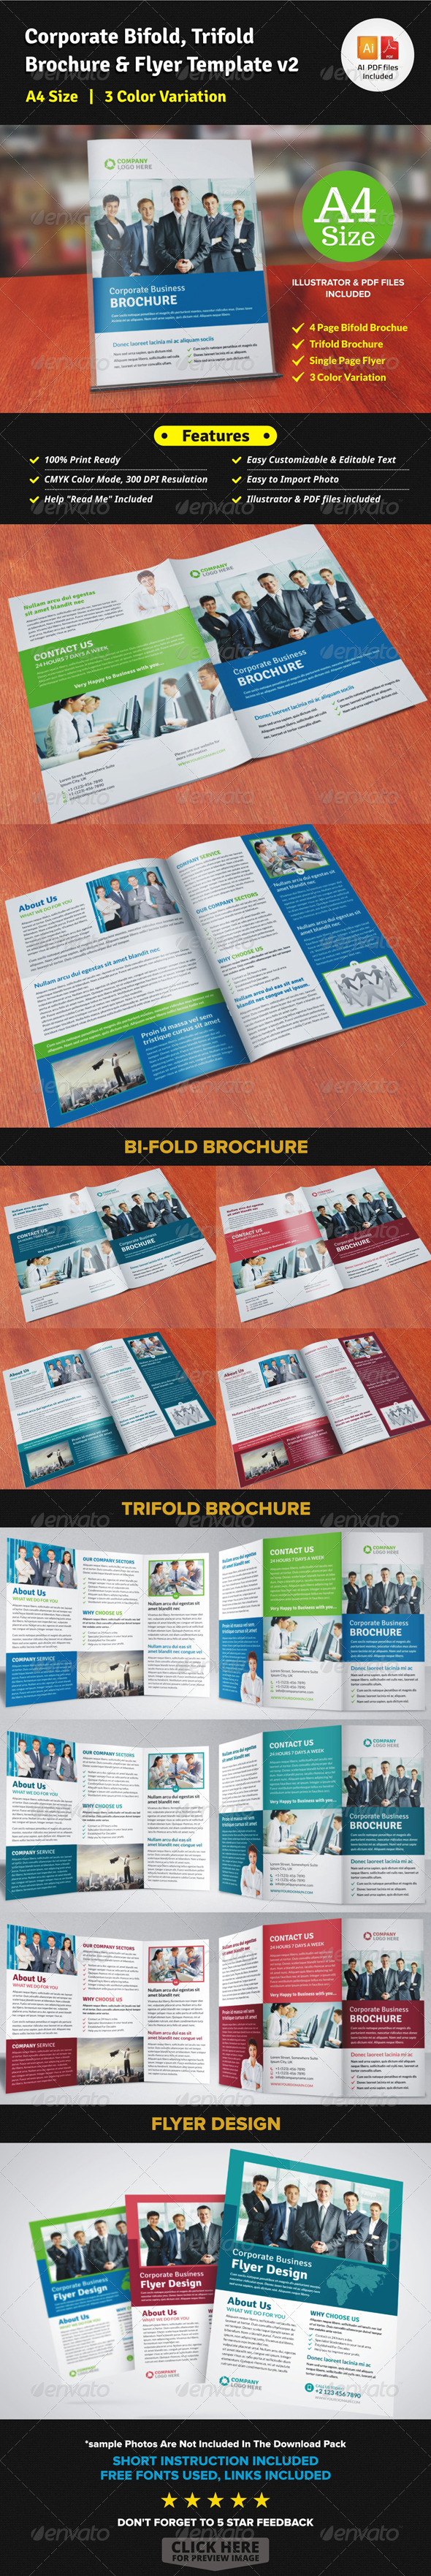 GraphicRiver Corporate Bifold Trifold Brochure & Flyer v2 7600632